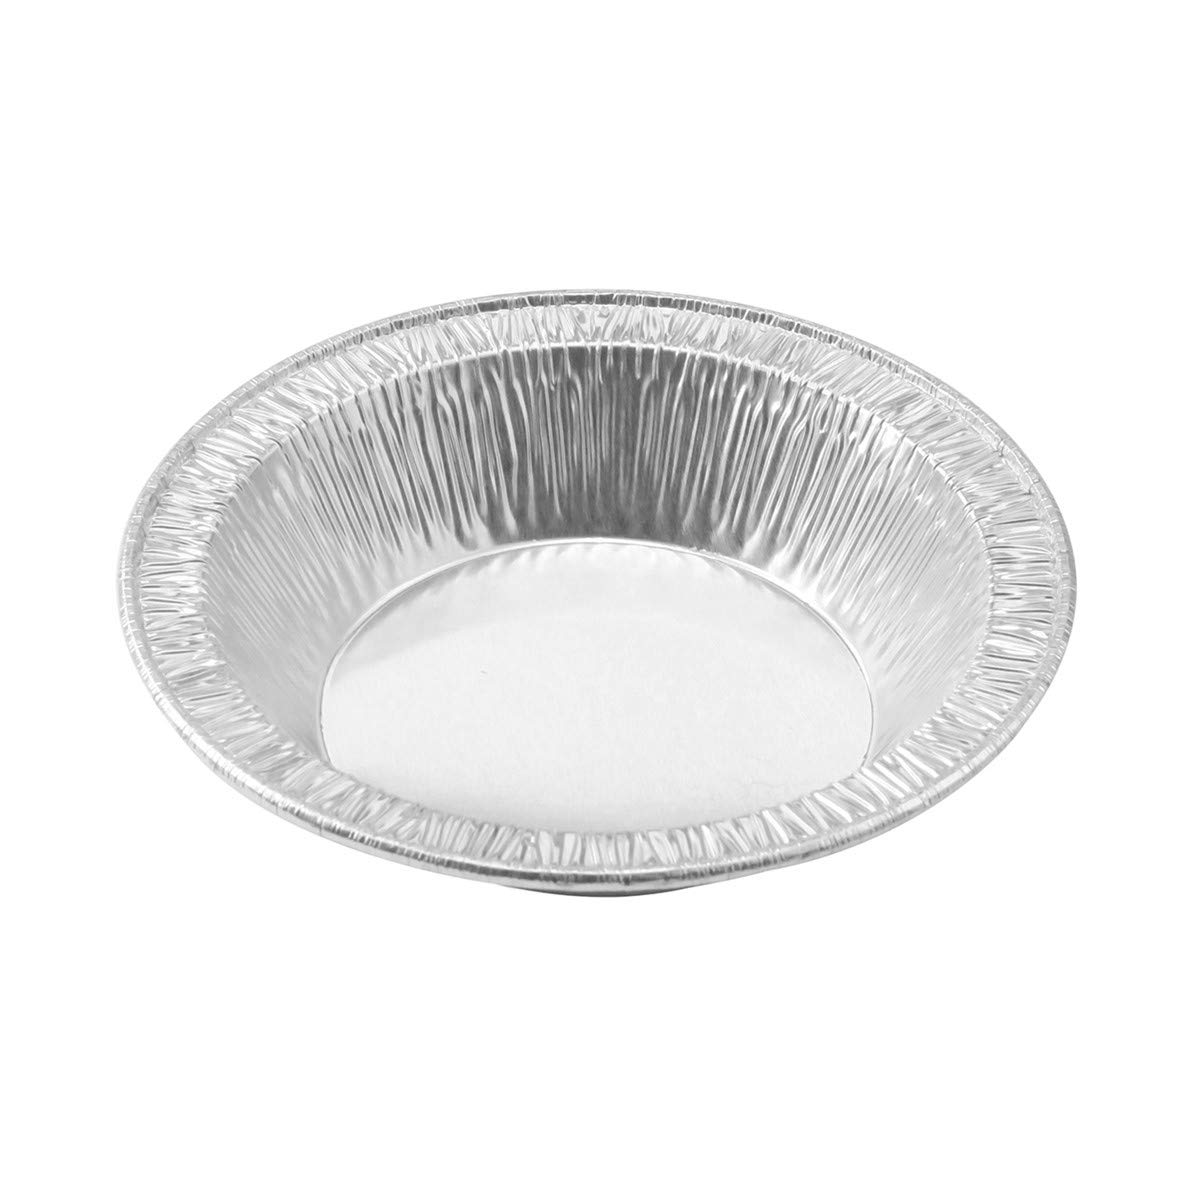 D & W Fine Pack 5 oz. Disposable Aluminum 4½'''' Deep Tart/Individual Pie Pan #B13 (250) by KitchenDance (Image #7)